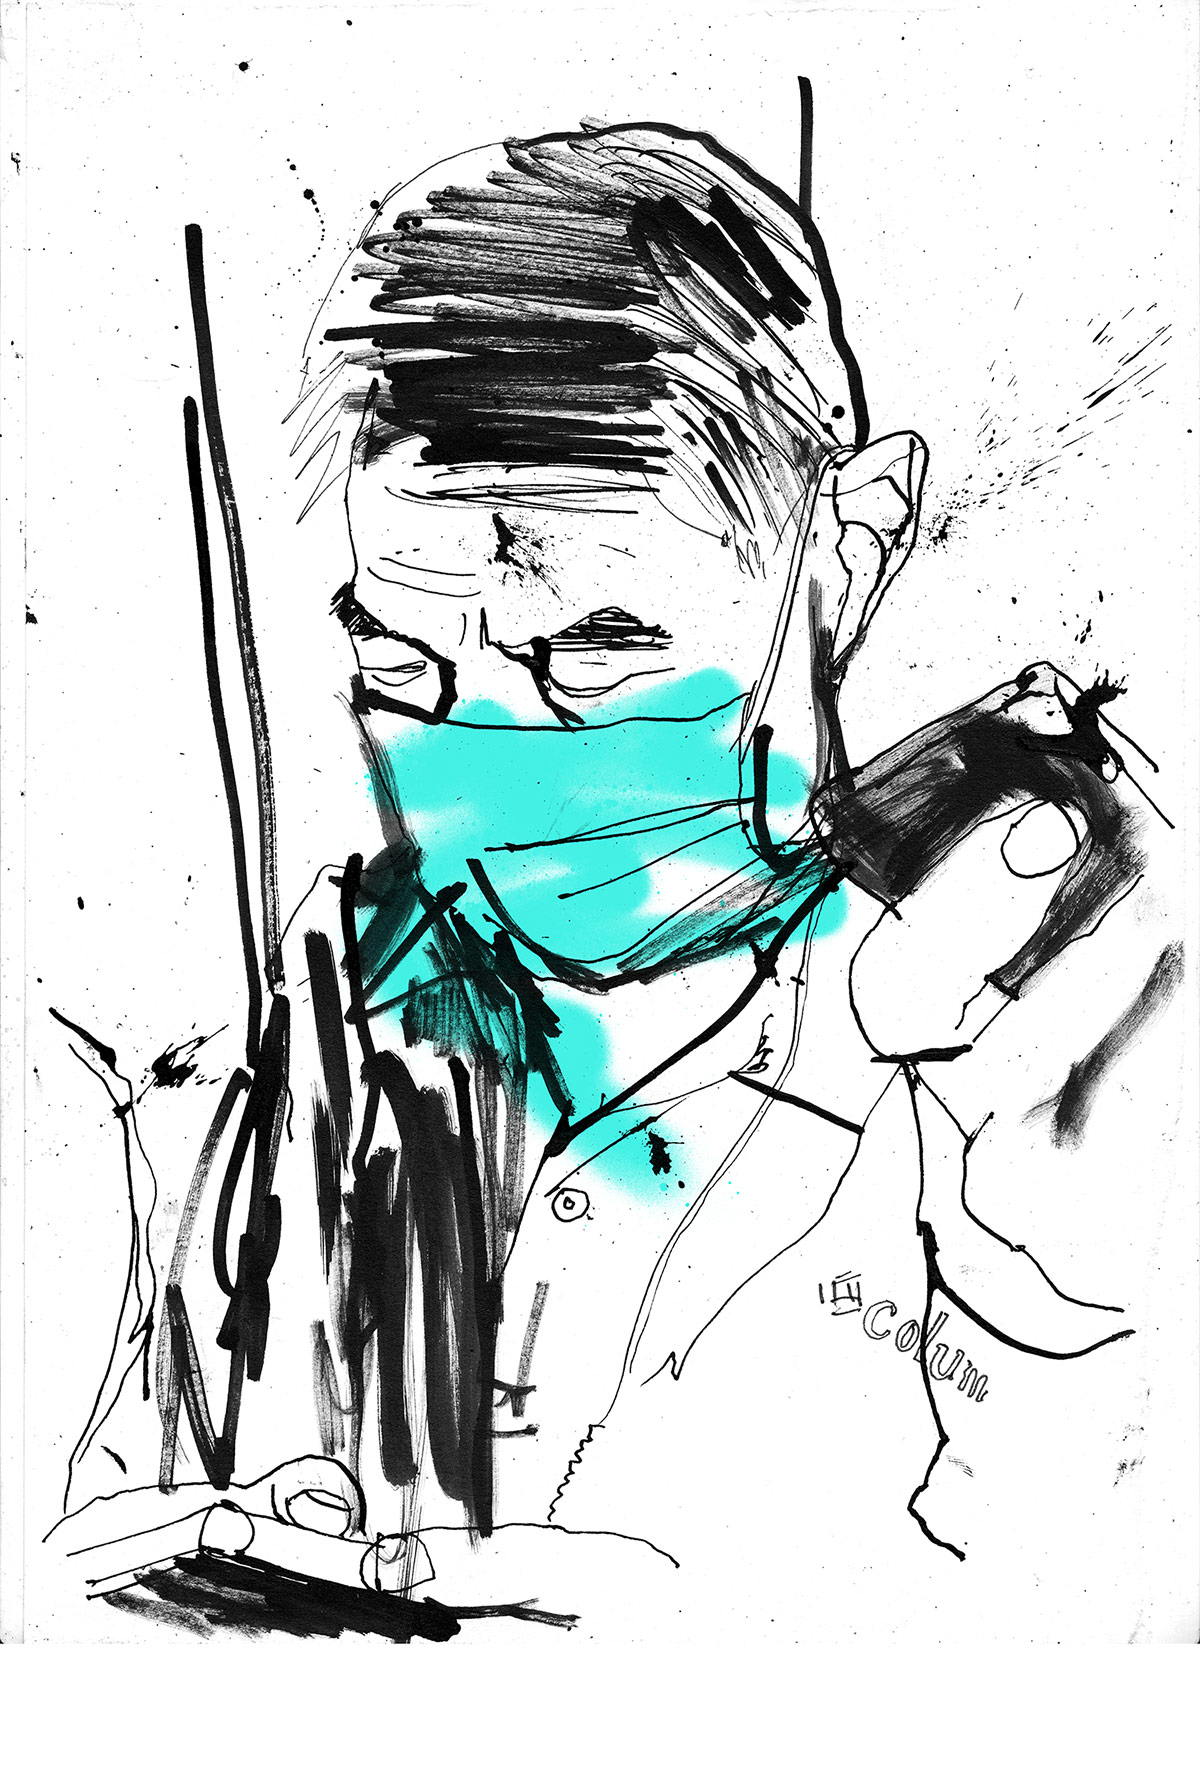 Hong Kong reportage illustration by Ben Tallon, illustrator UK. Urban sketchy style of drawing, ink, paint, spray paint, hand drawn artwork